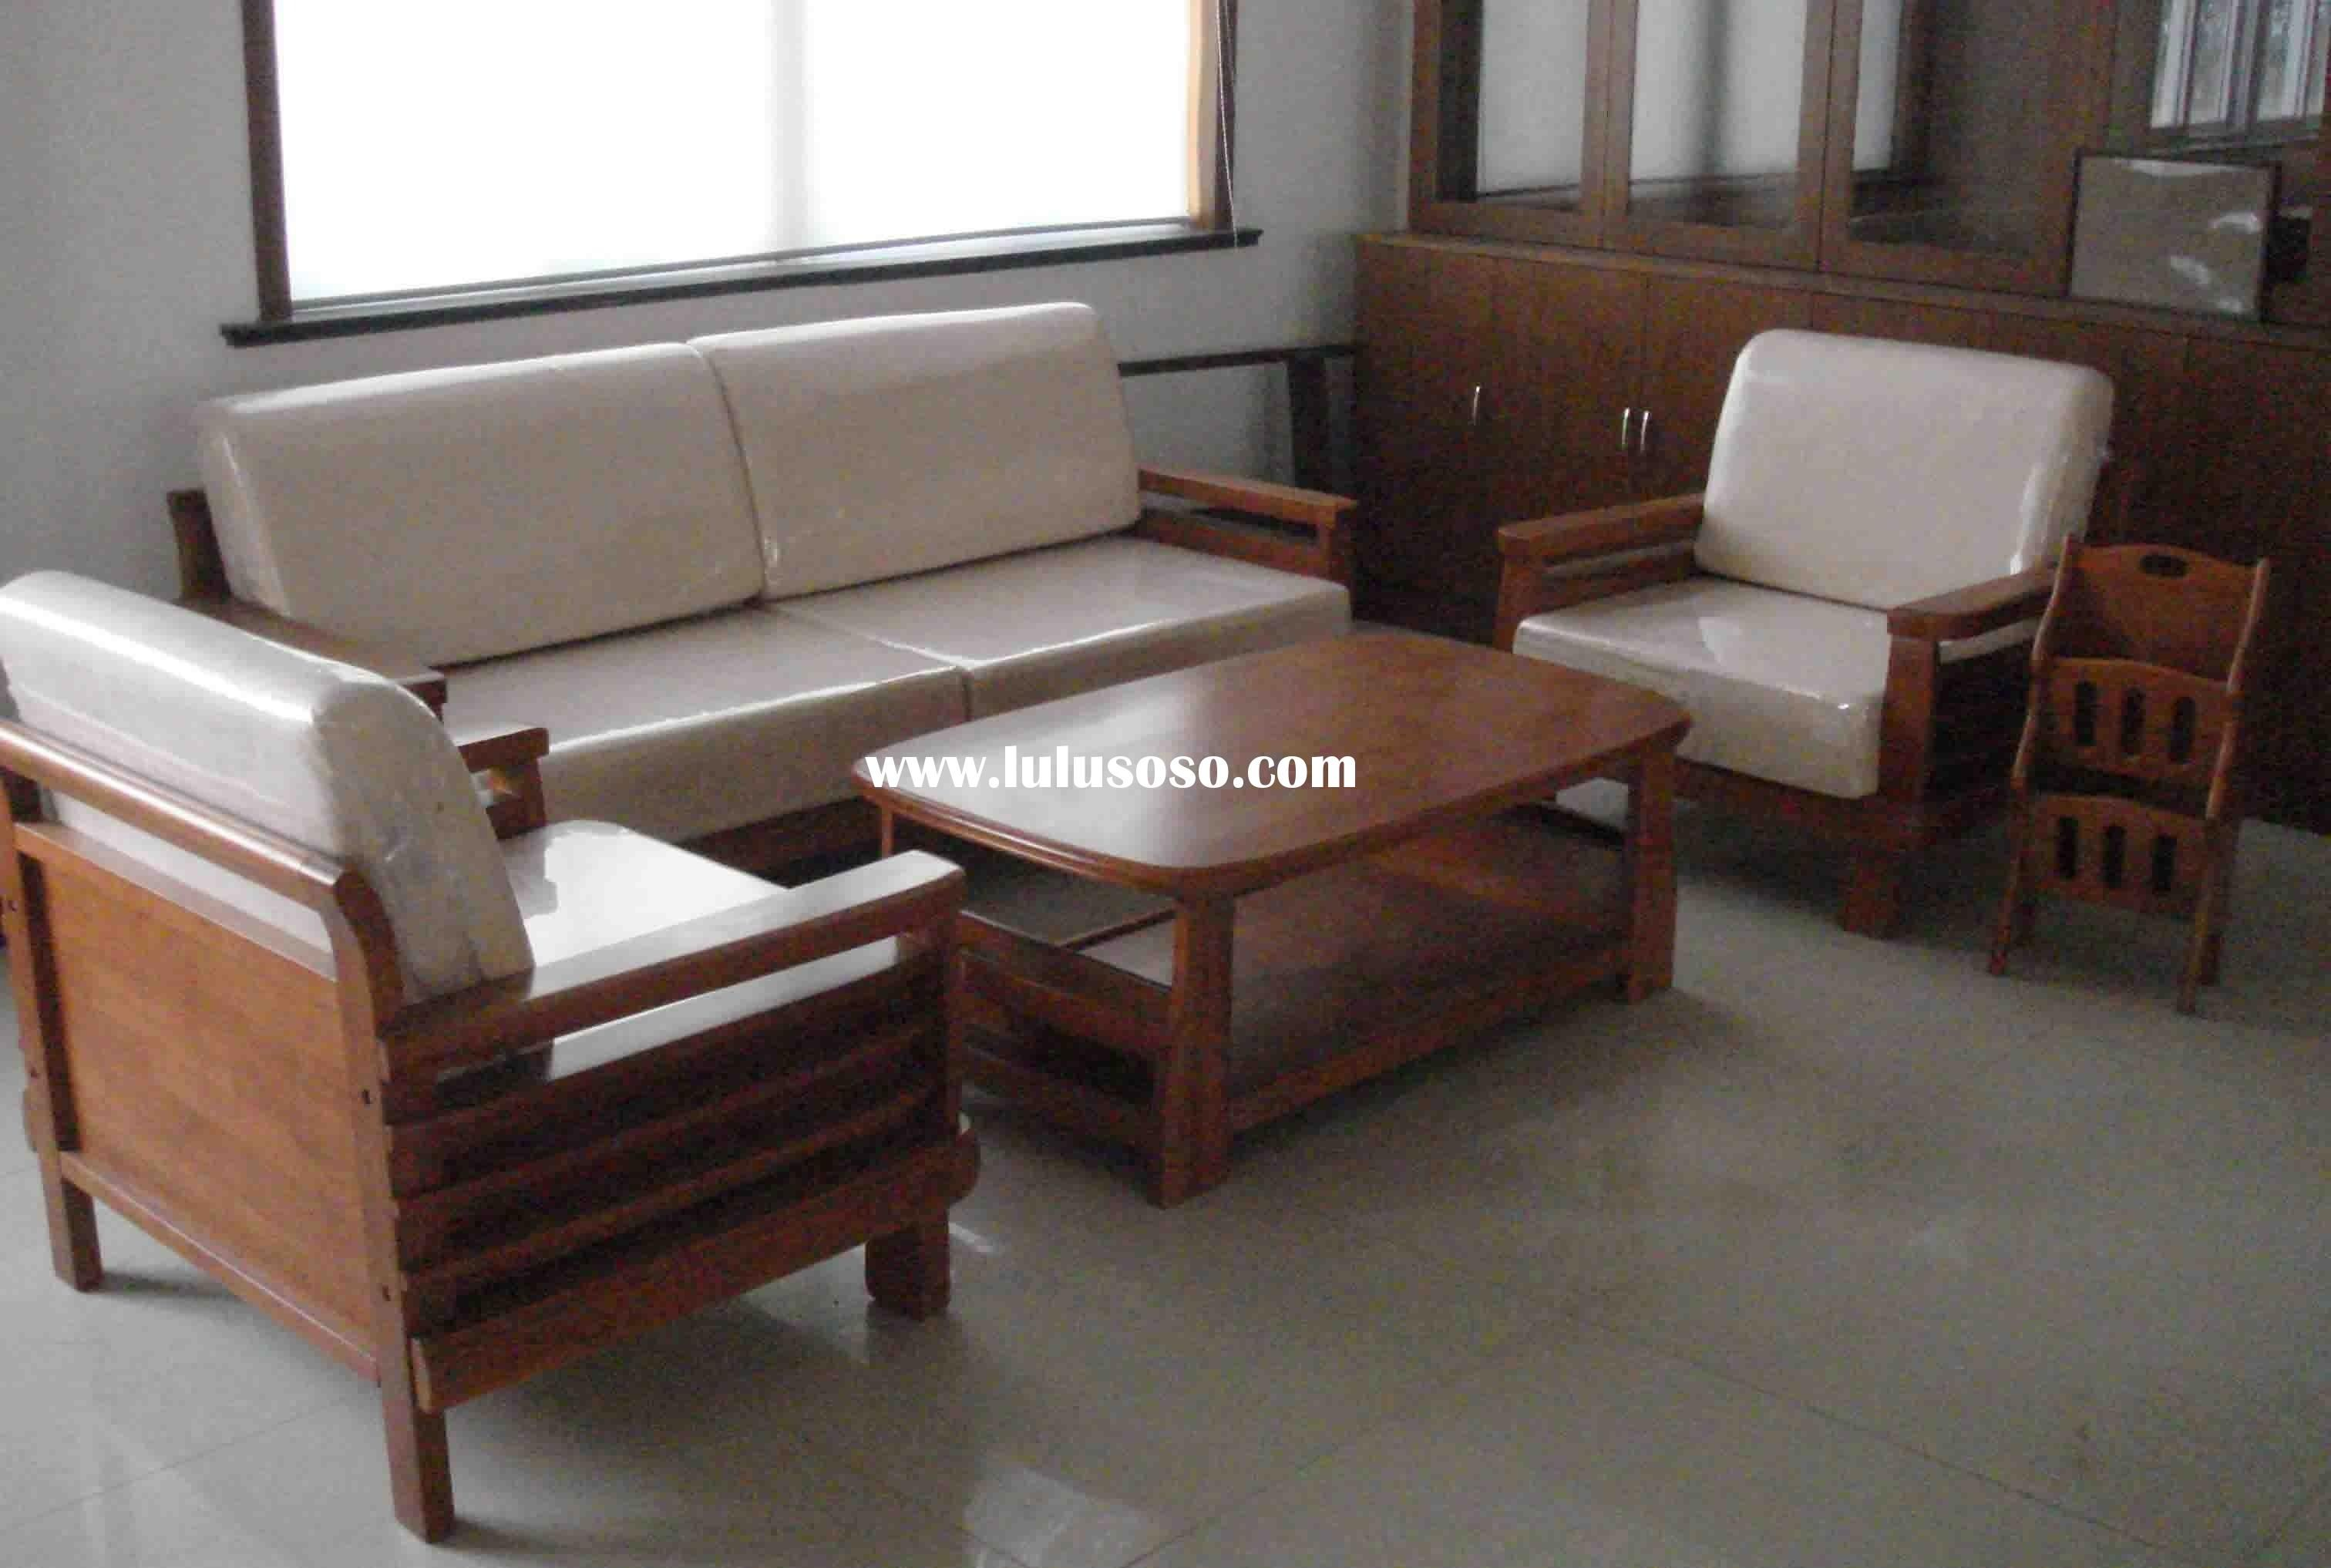 Amazing Modern Style Couches Office Furniture Modern Style Wooden